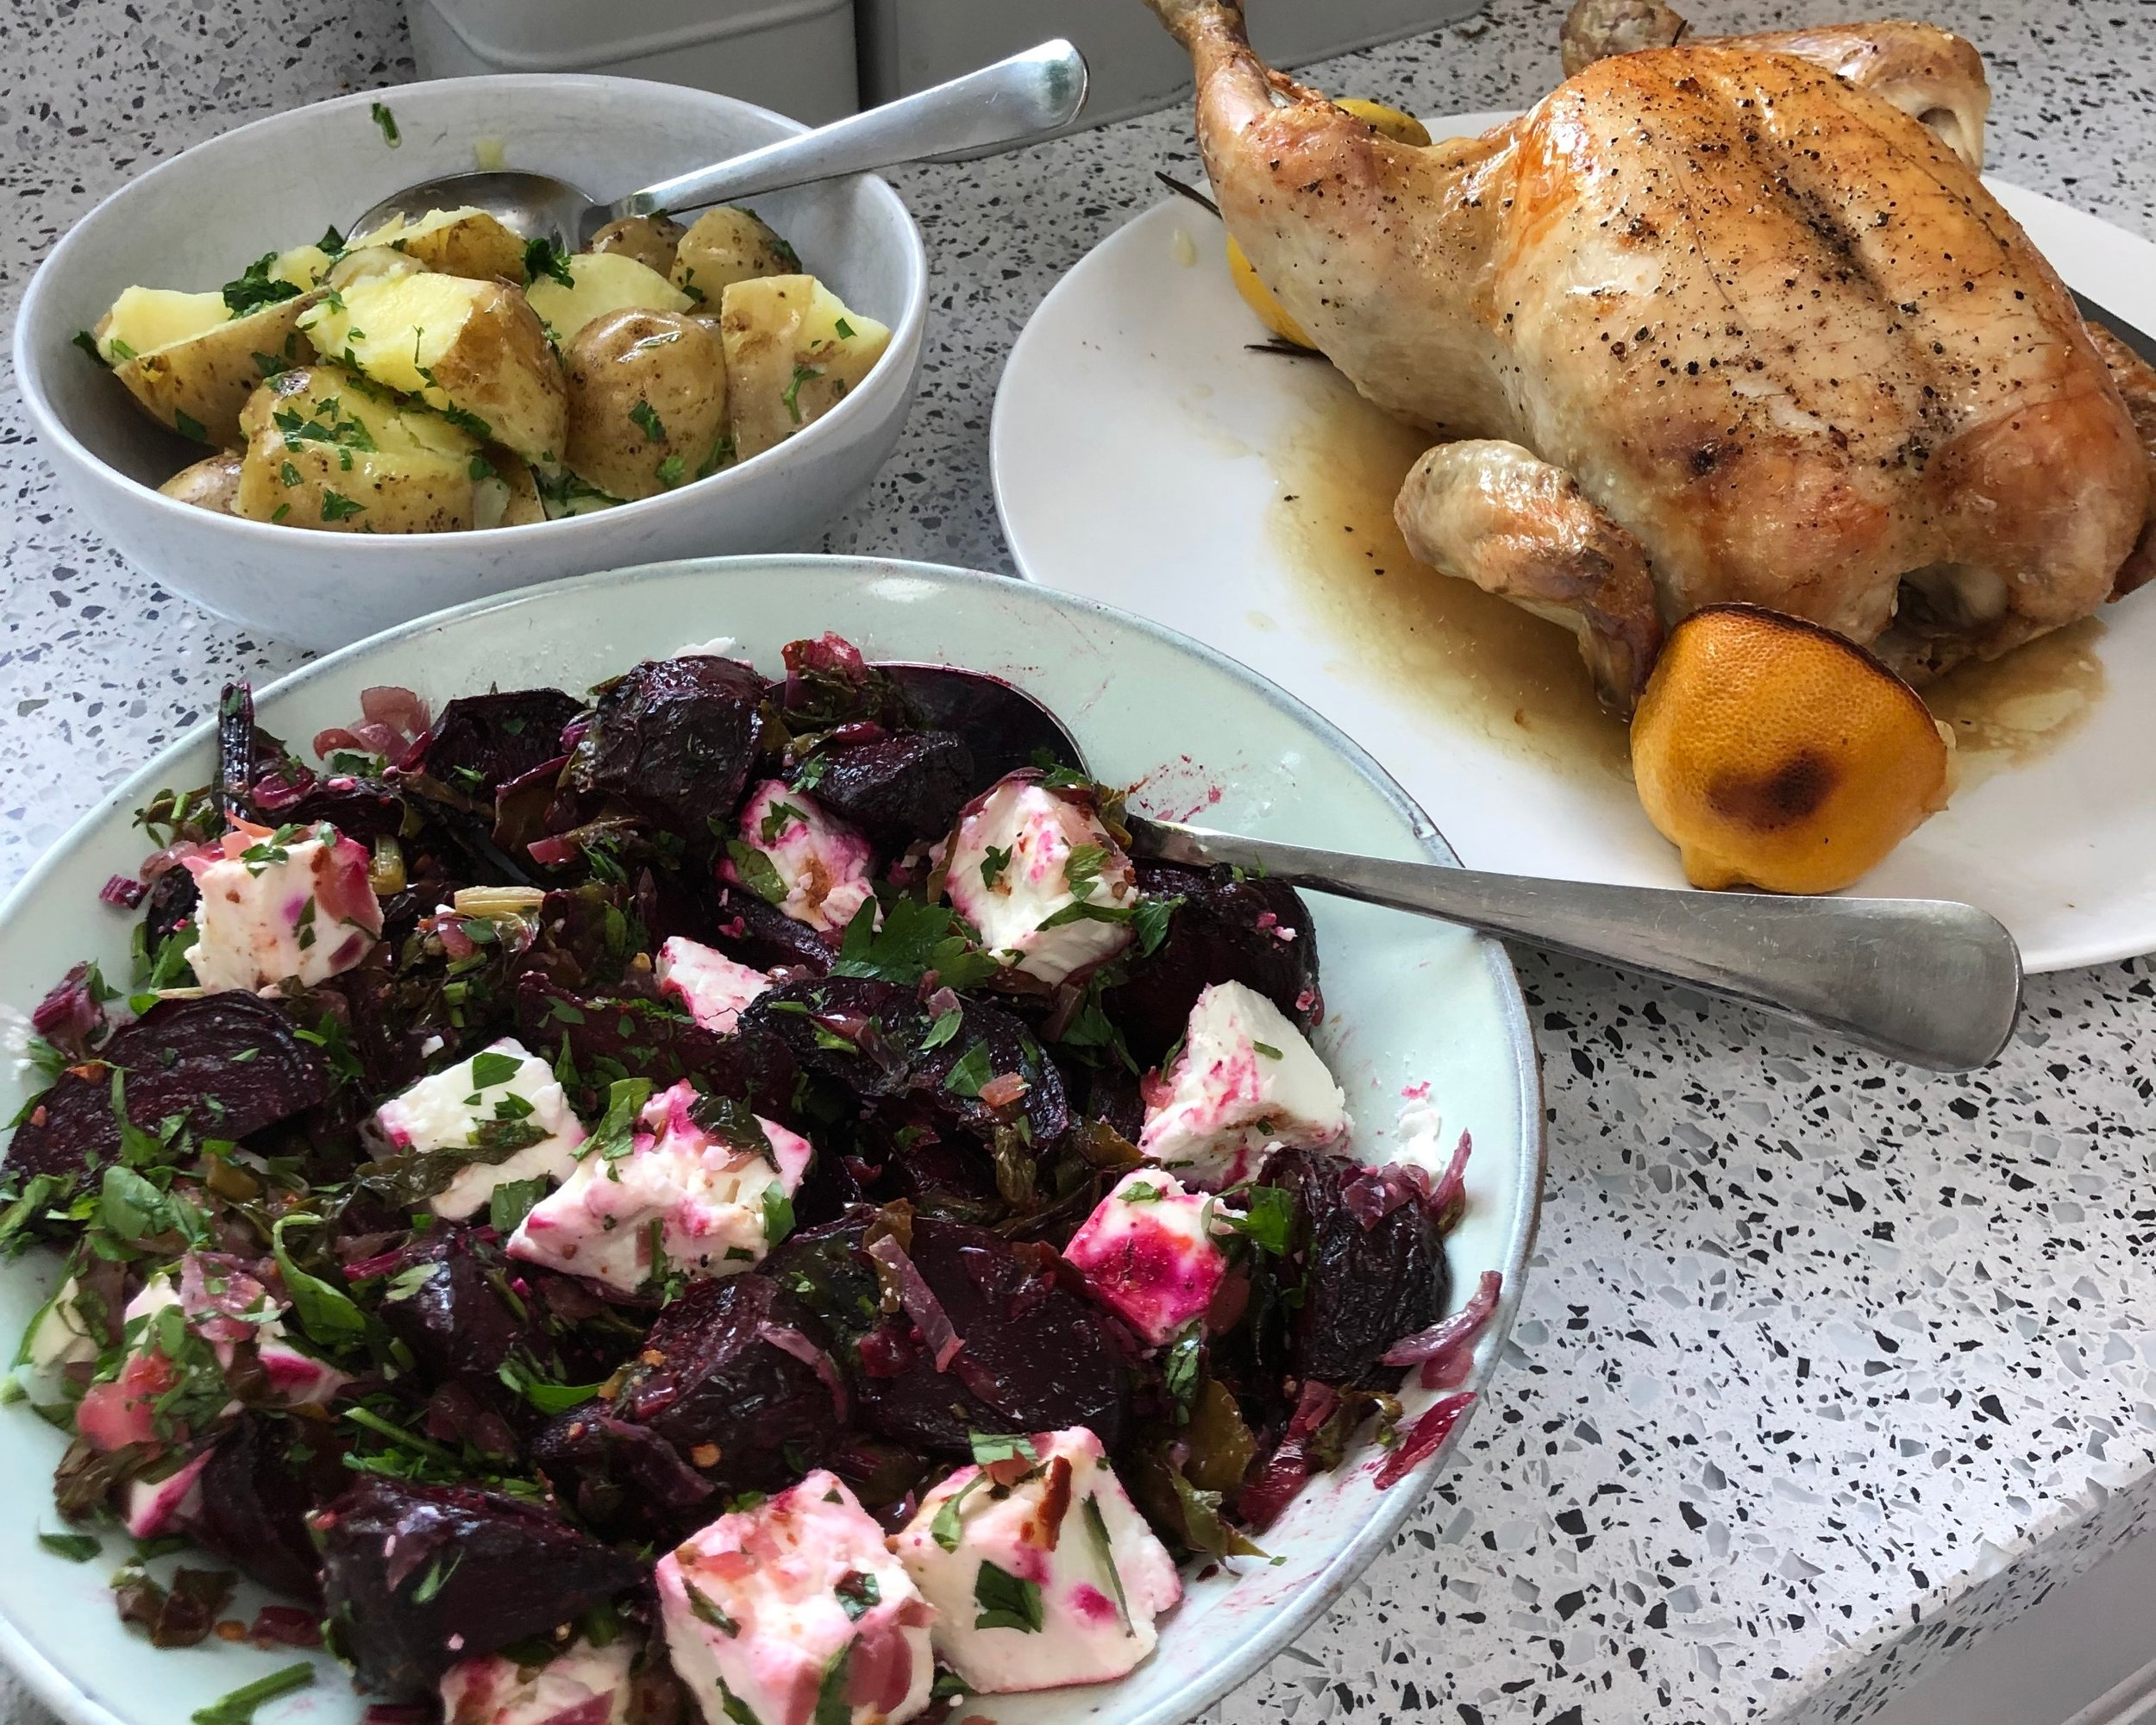 Roasted Beetroot, Wilted Green and Feta Salad served with Roast Lemon and Rosemary Chicken and New Potatoes.